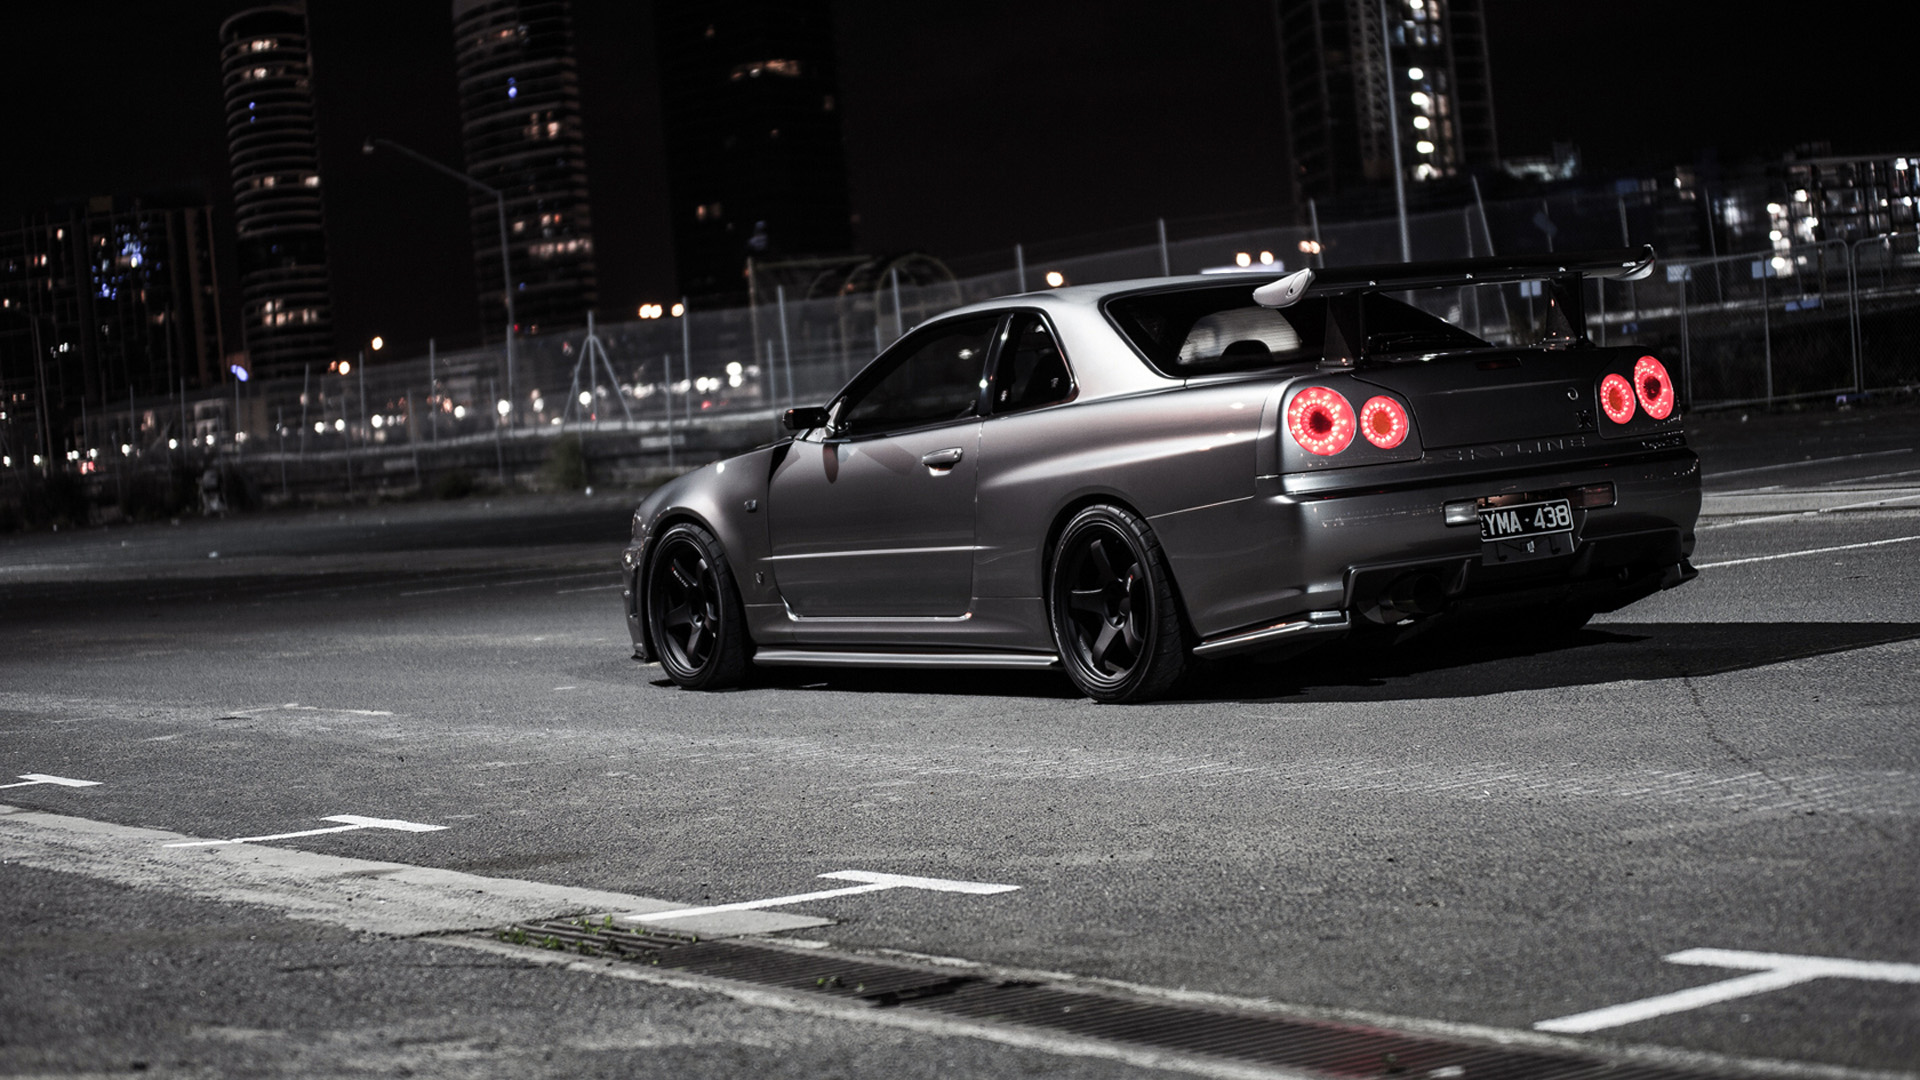 Nissan Skyline Gtr Wallpaper